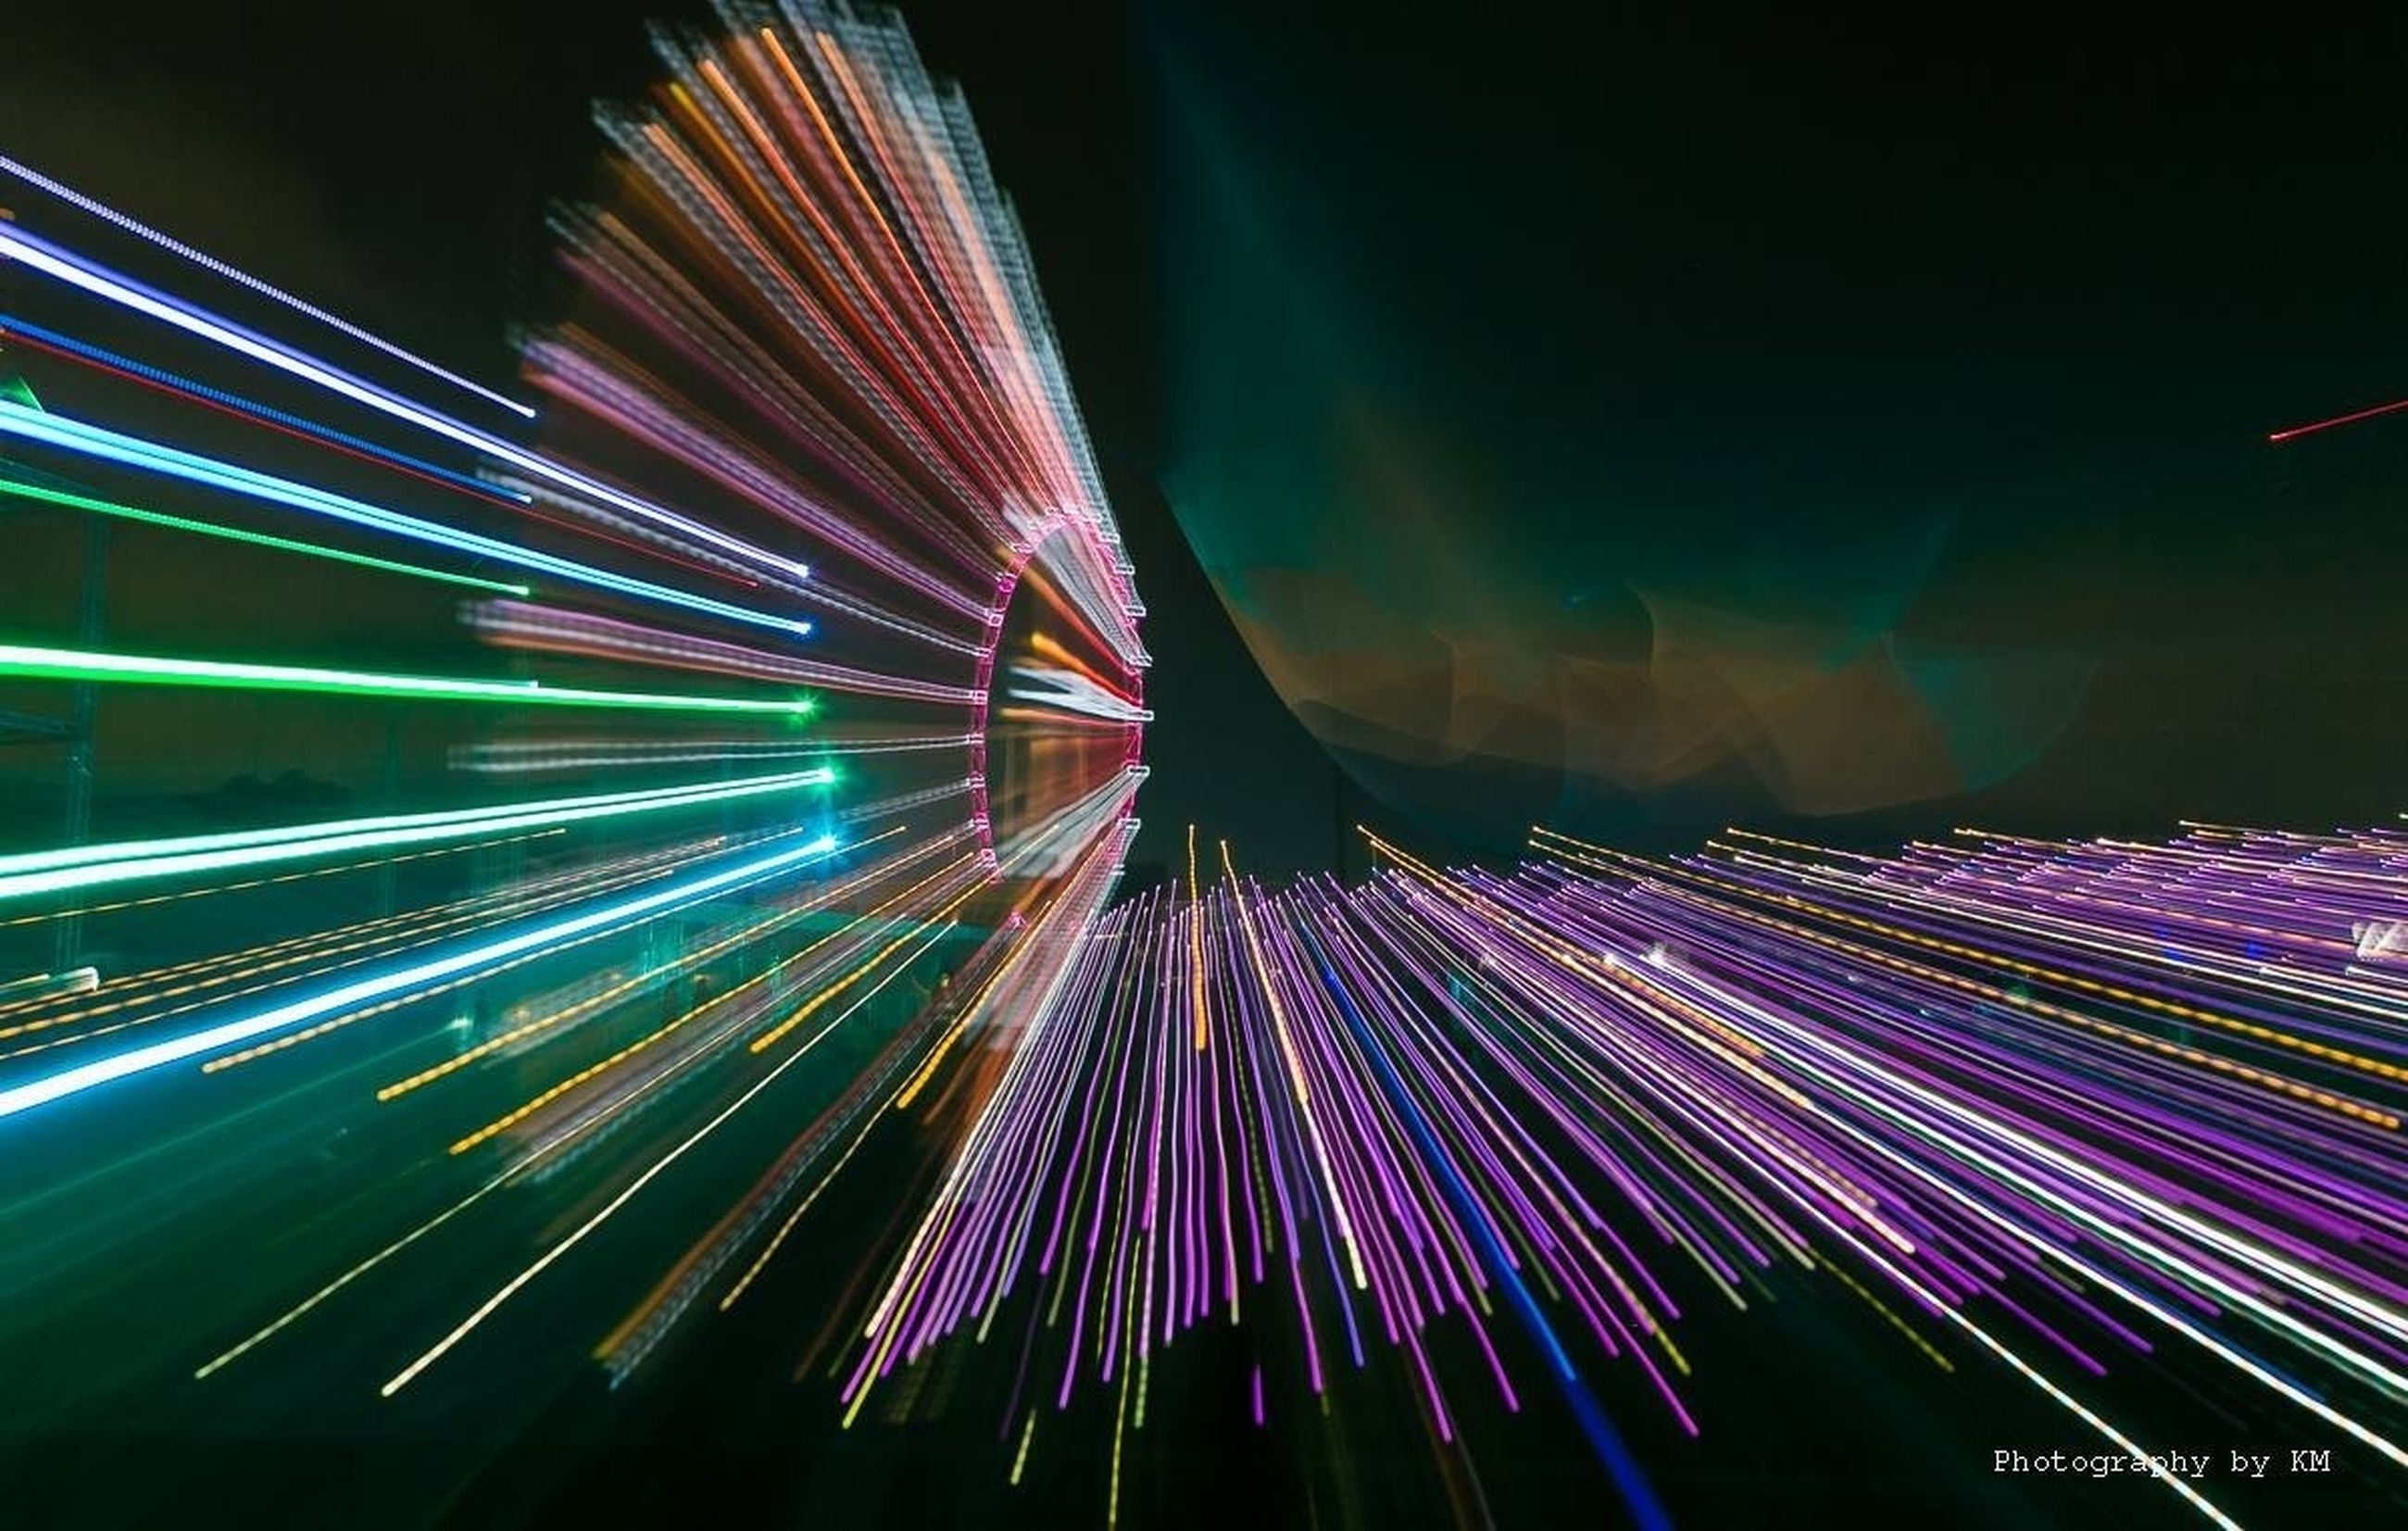 illuminated, night, long exposure, light trail, motion, multi colored, blurred motion, speed, lighting equipment, glowing, arts culture and entertainment, light - natural phenomenon, celebration, light, event, firework display, colorful, outdoors, transportation, abstract